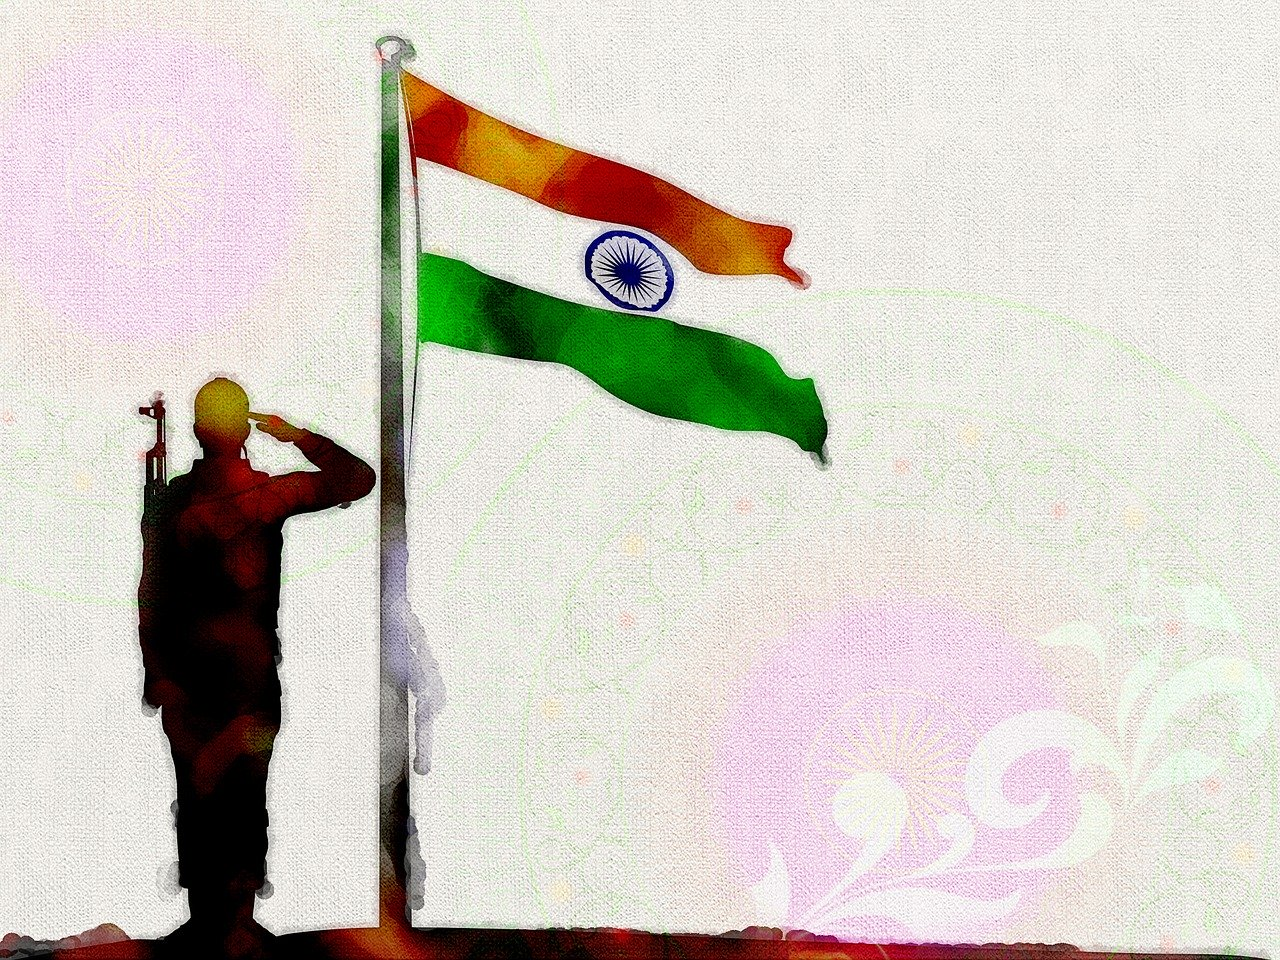 Republic-Day-Images-2020-